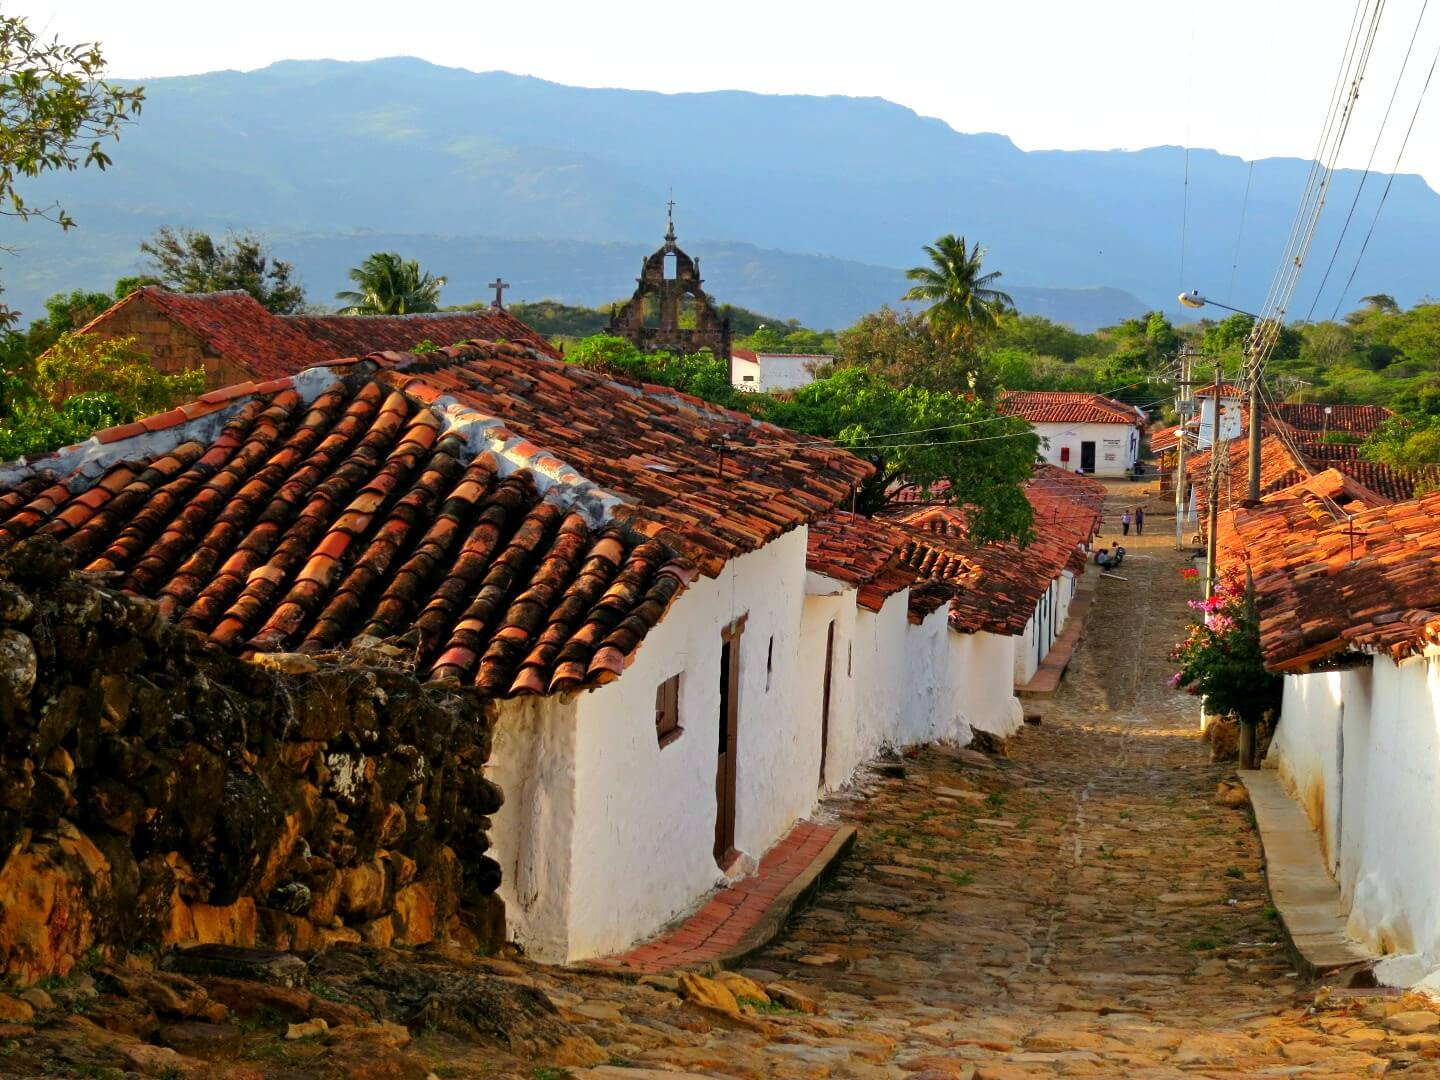 Stunning Guane is next to Barichara, the so-called most beautiful town in Colombia. They're both a great day trip from San Gil, Colombia! Read more on our ultimate itinerary for backpacking in Colombia.